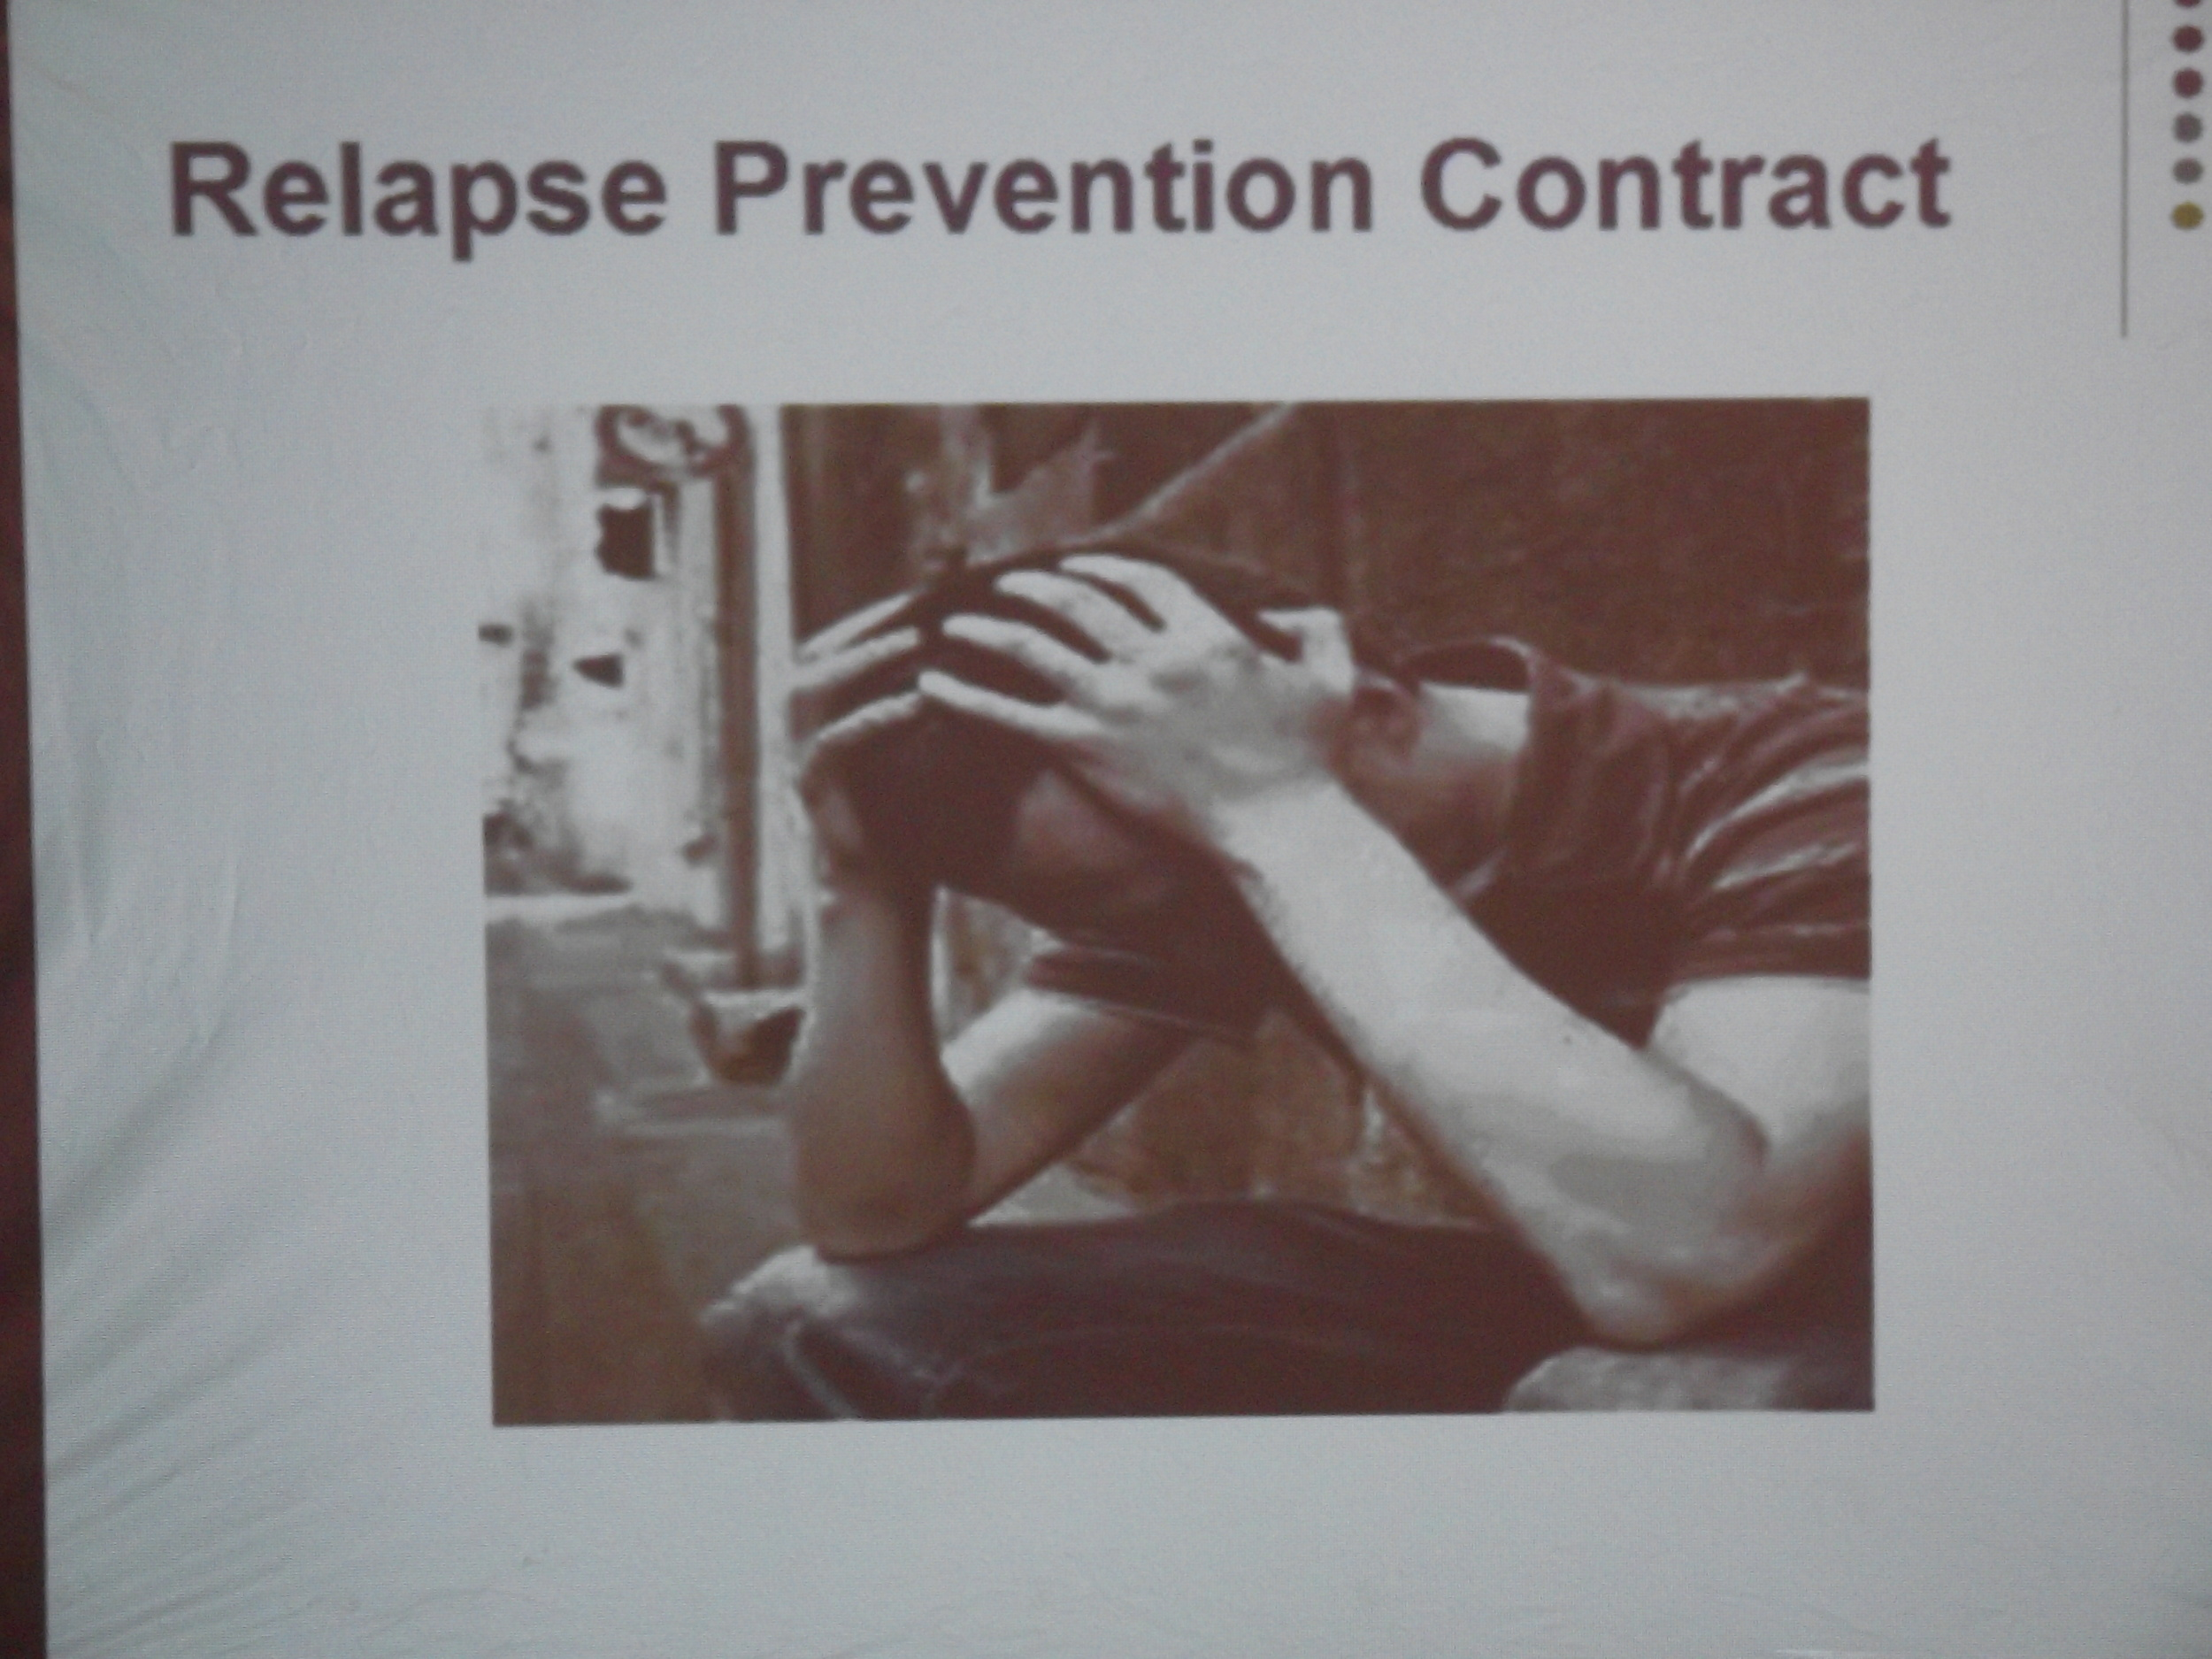 Relapse Prevention Contract 3.JPG